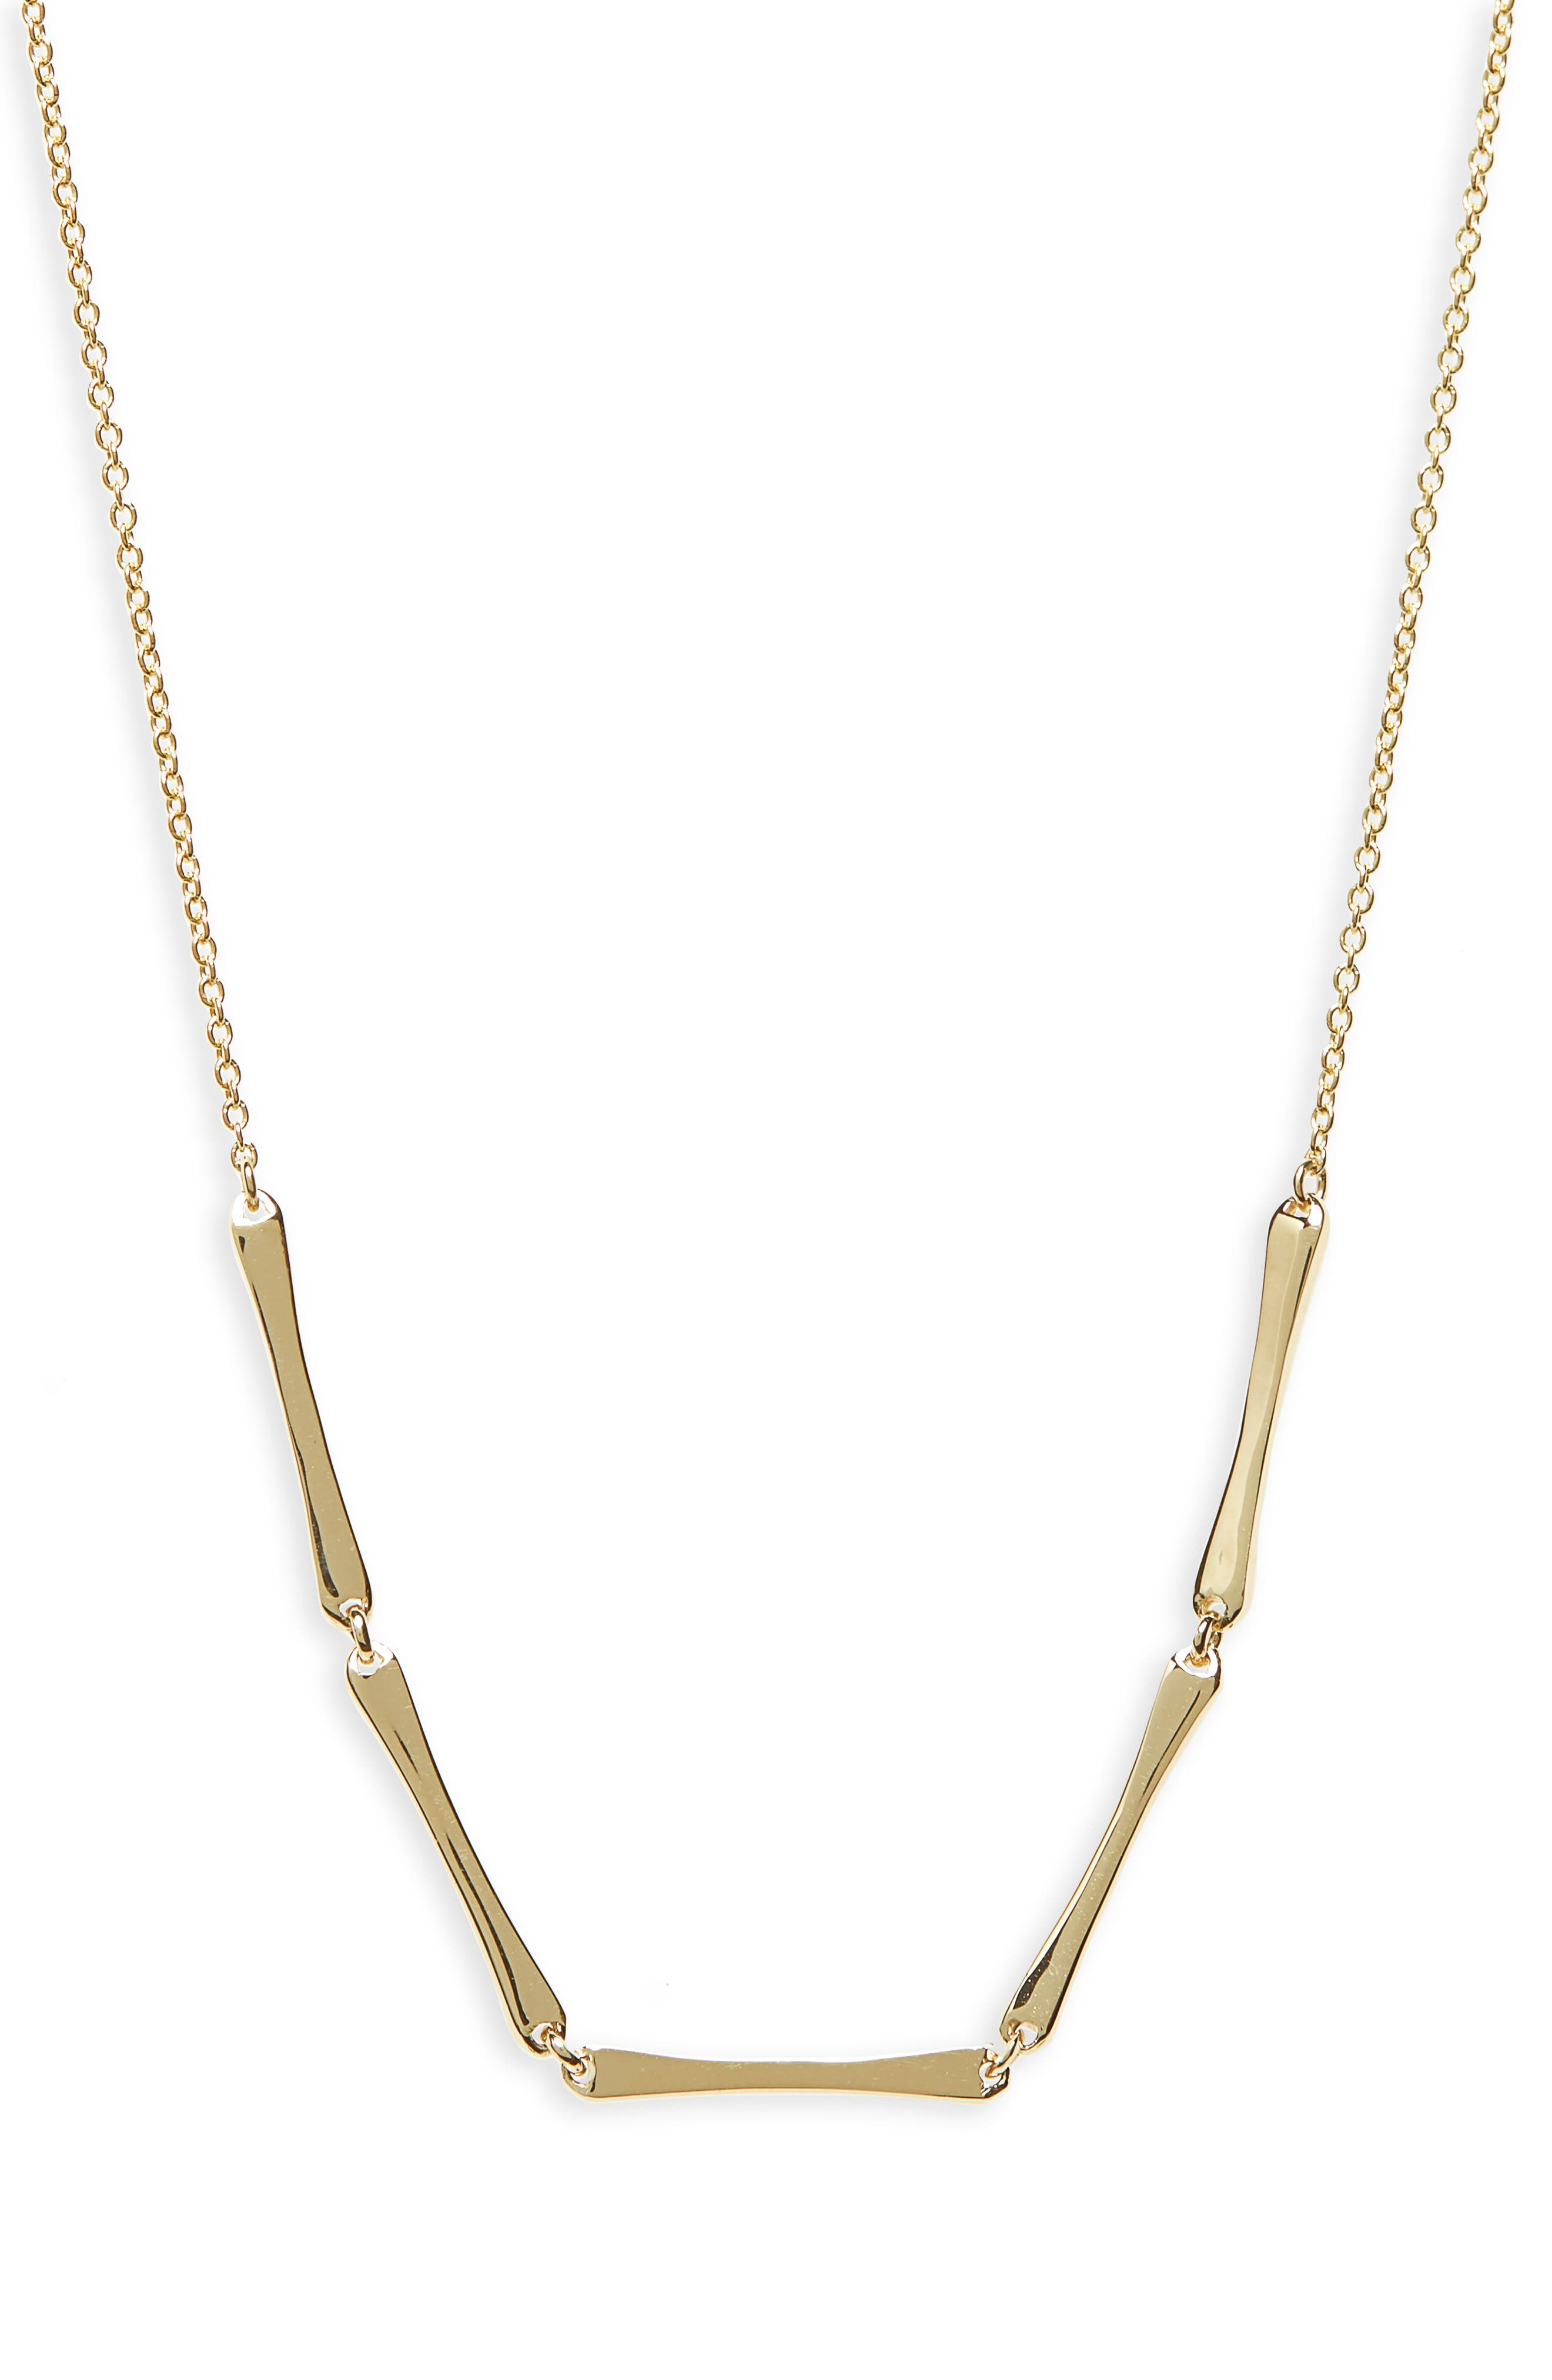 Bar Station Necklace,                         Main,                         color, YELLOW GOLD